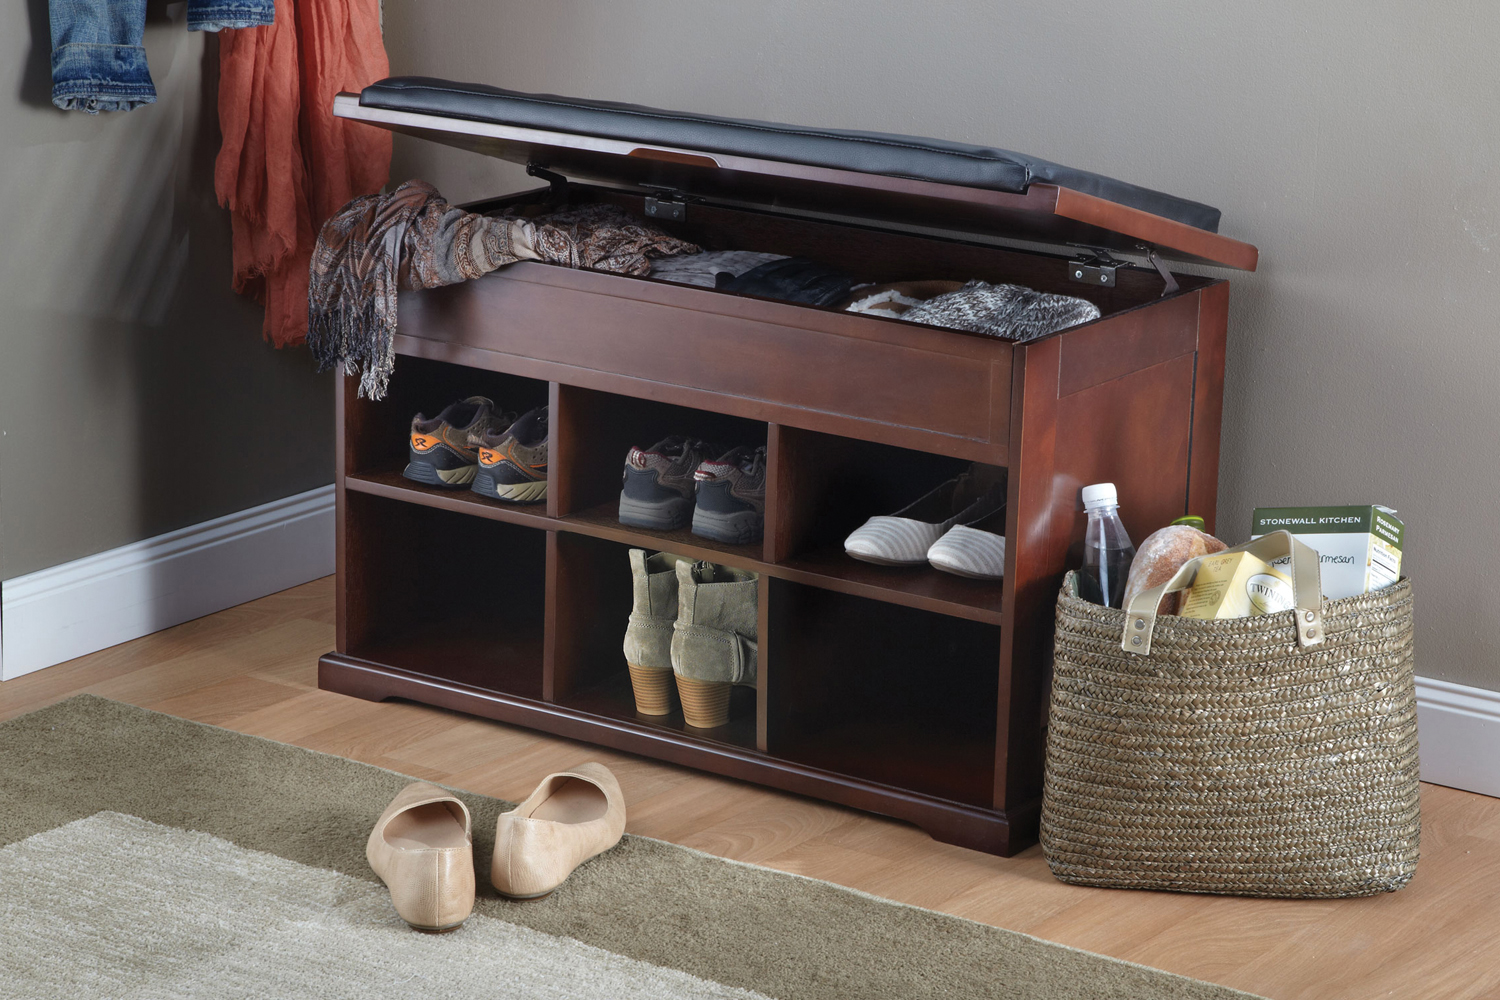 Merry products wooden shoe organizer storage bench with cushion mahogany finish ebay Shoe storage bench with cushion